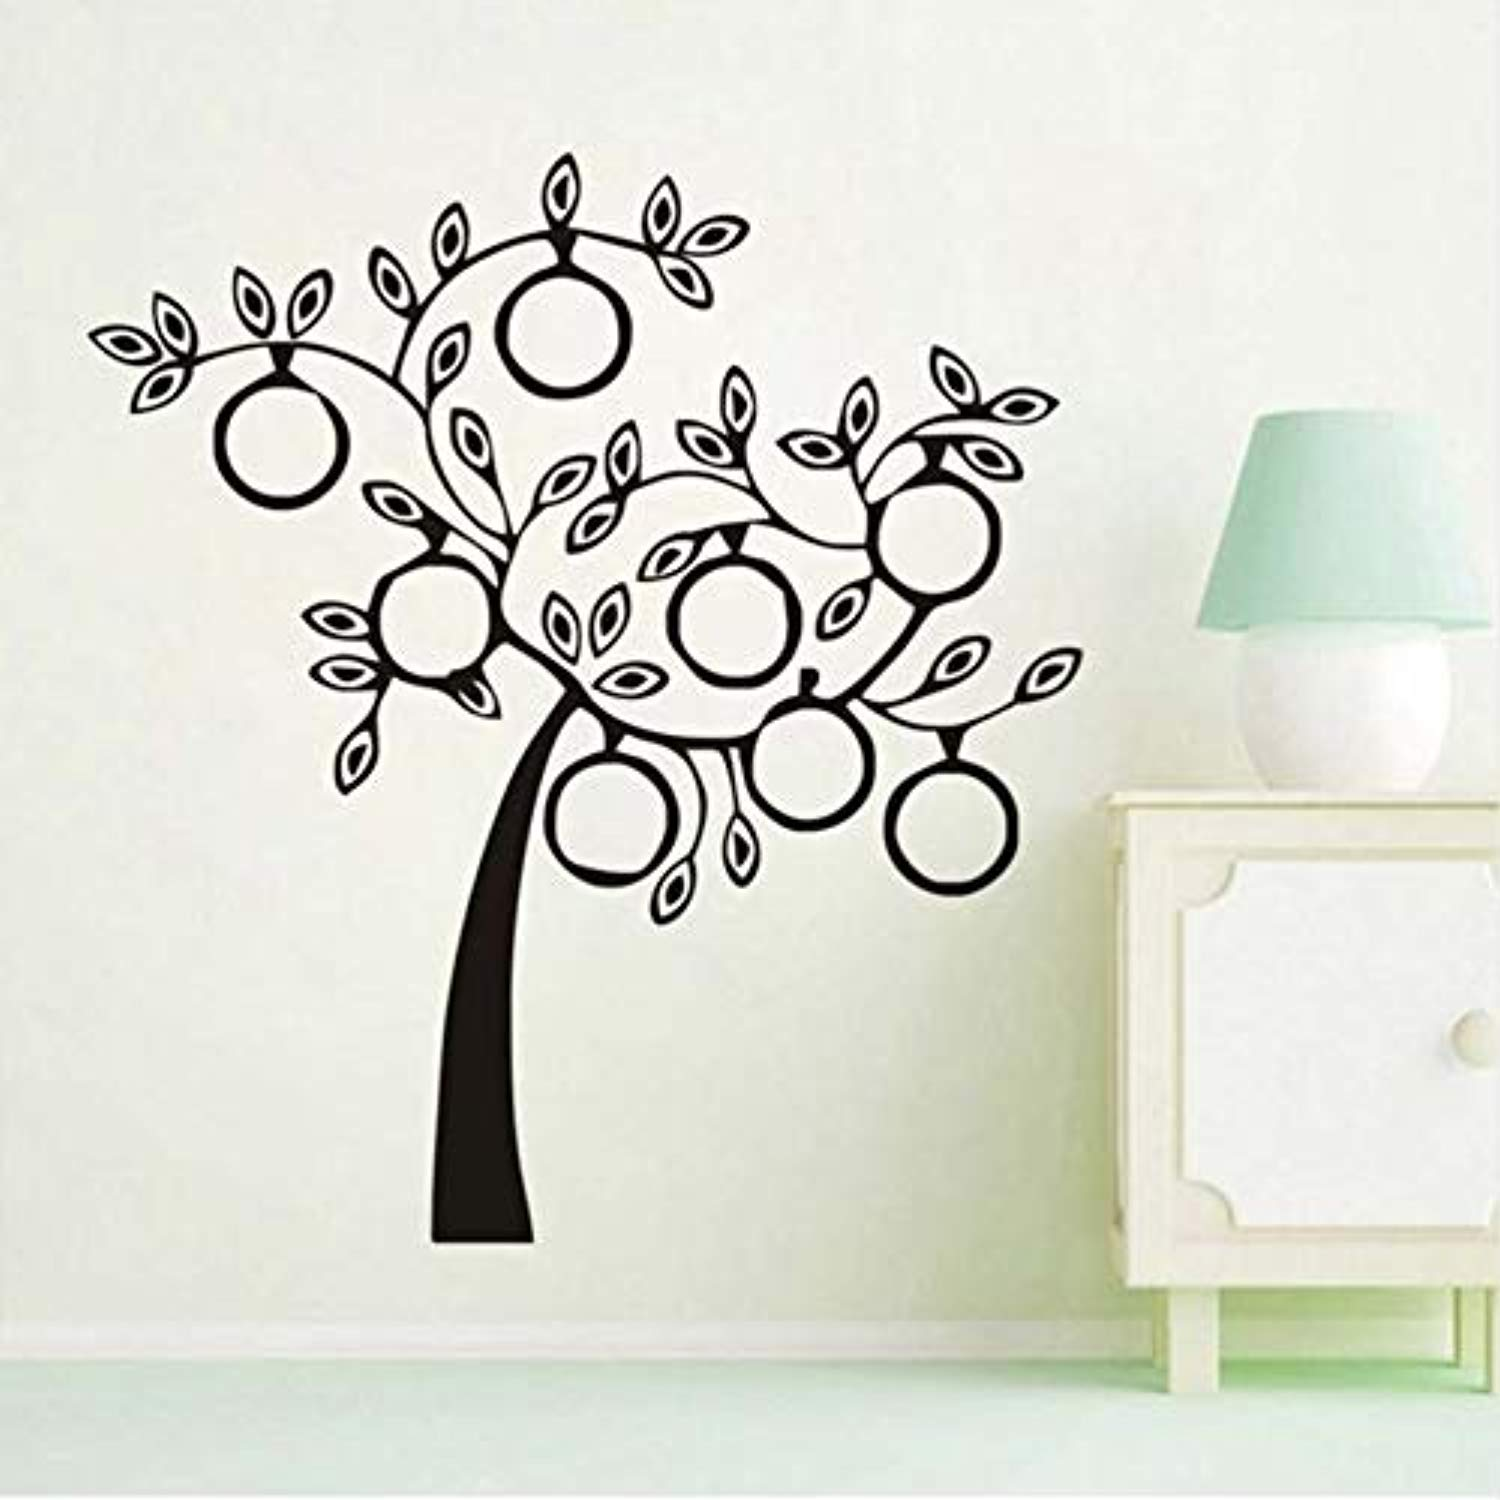 Removable Wall Decals Photo Picture Frame Removable Stickers Art Room Decor US